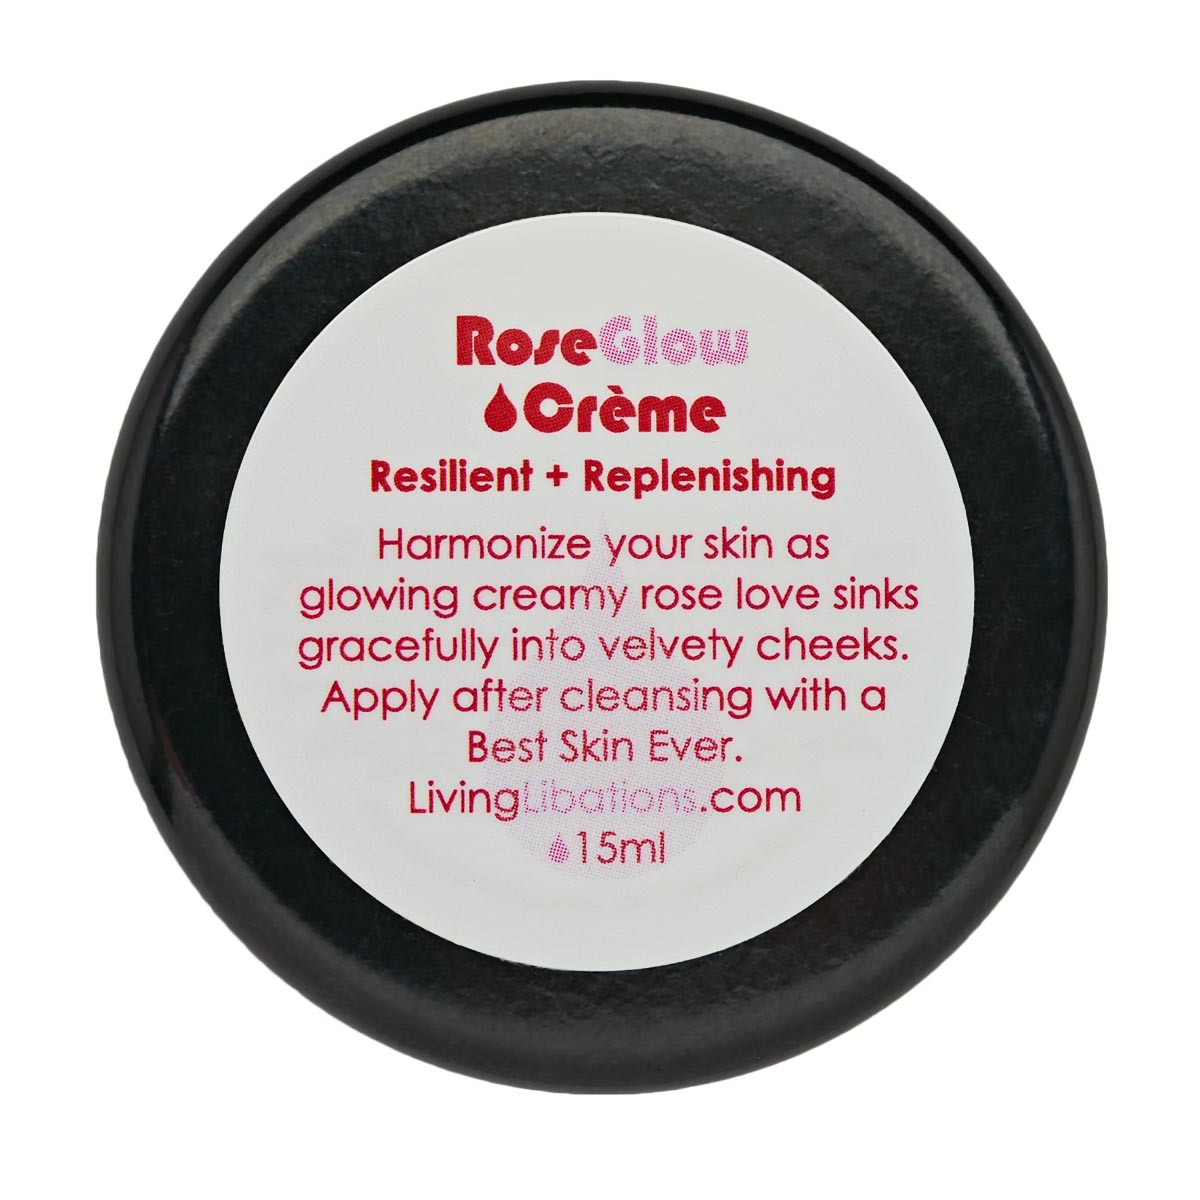 Living Libations - Rose Glow Face Creme (15ml)